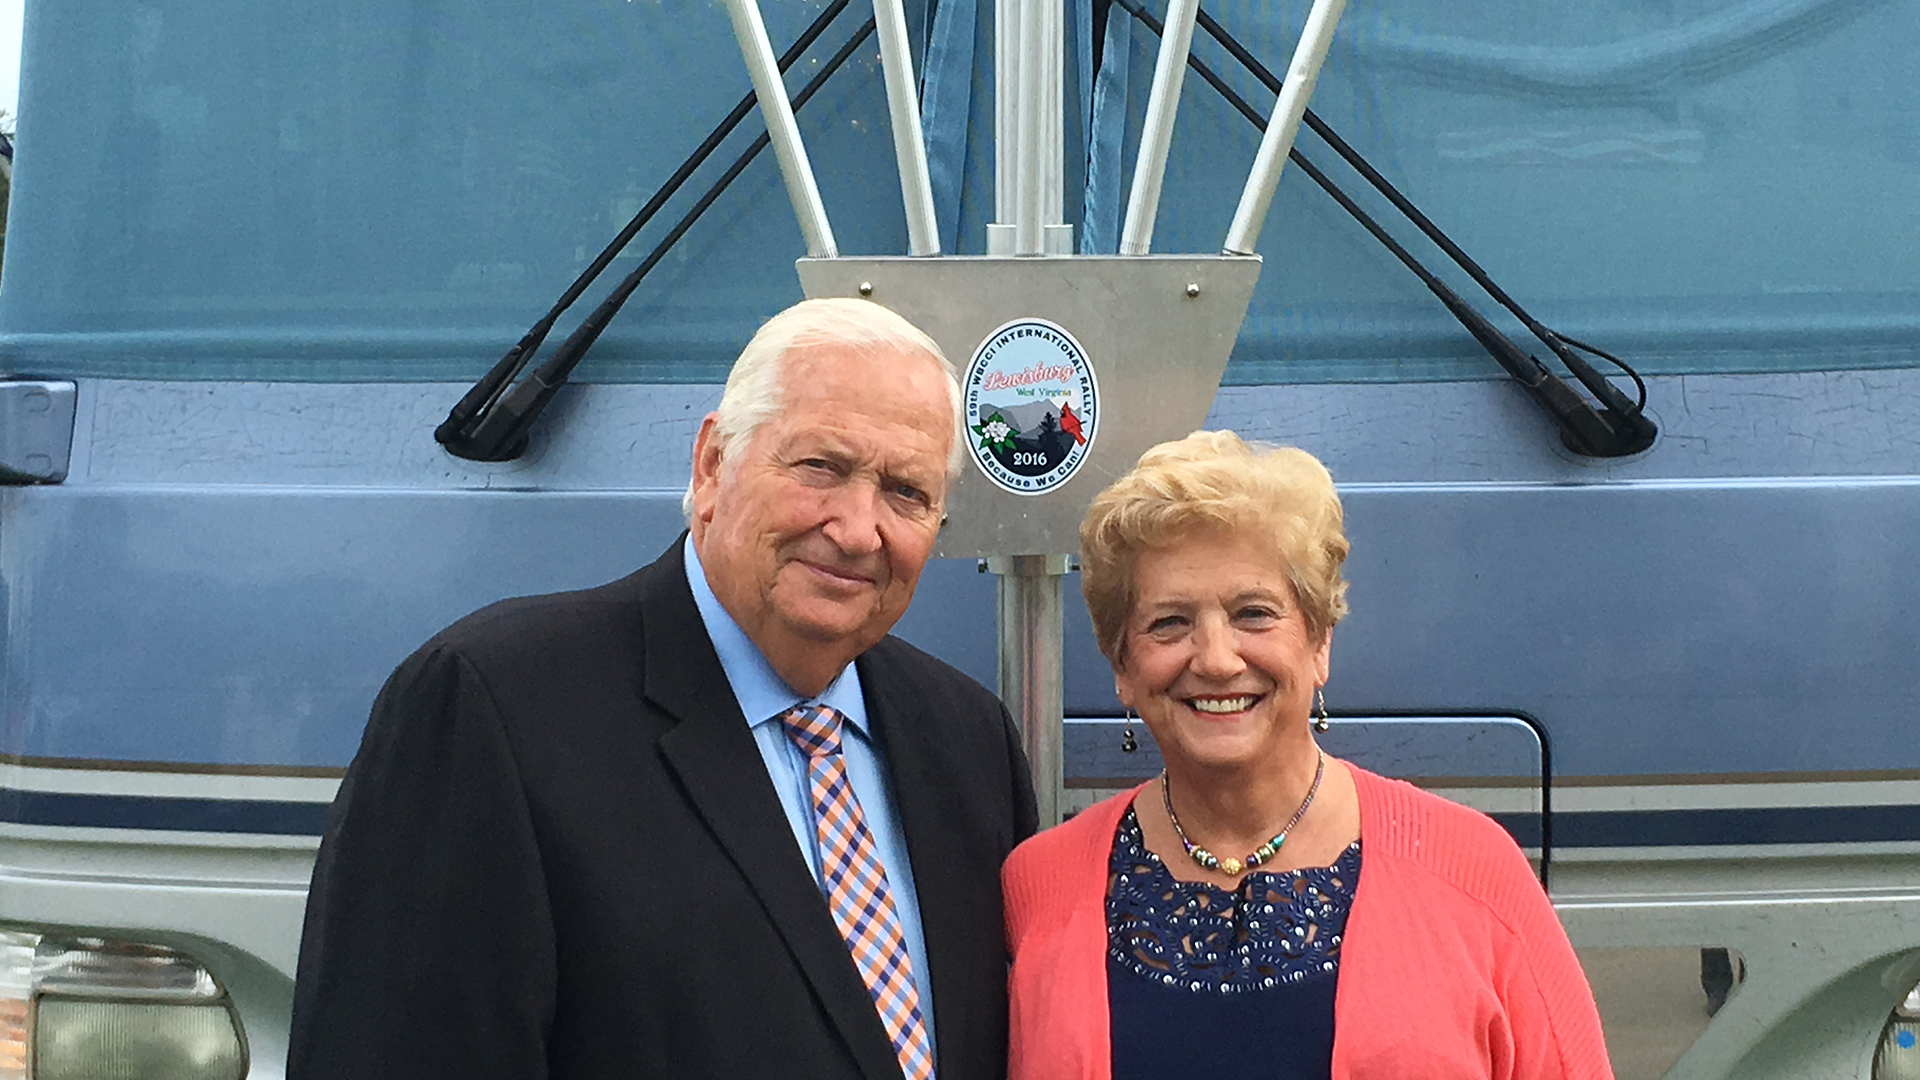 Barry-and-Karen-Bell-WBCCI-Airstream-Club-Motorhome-2016